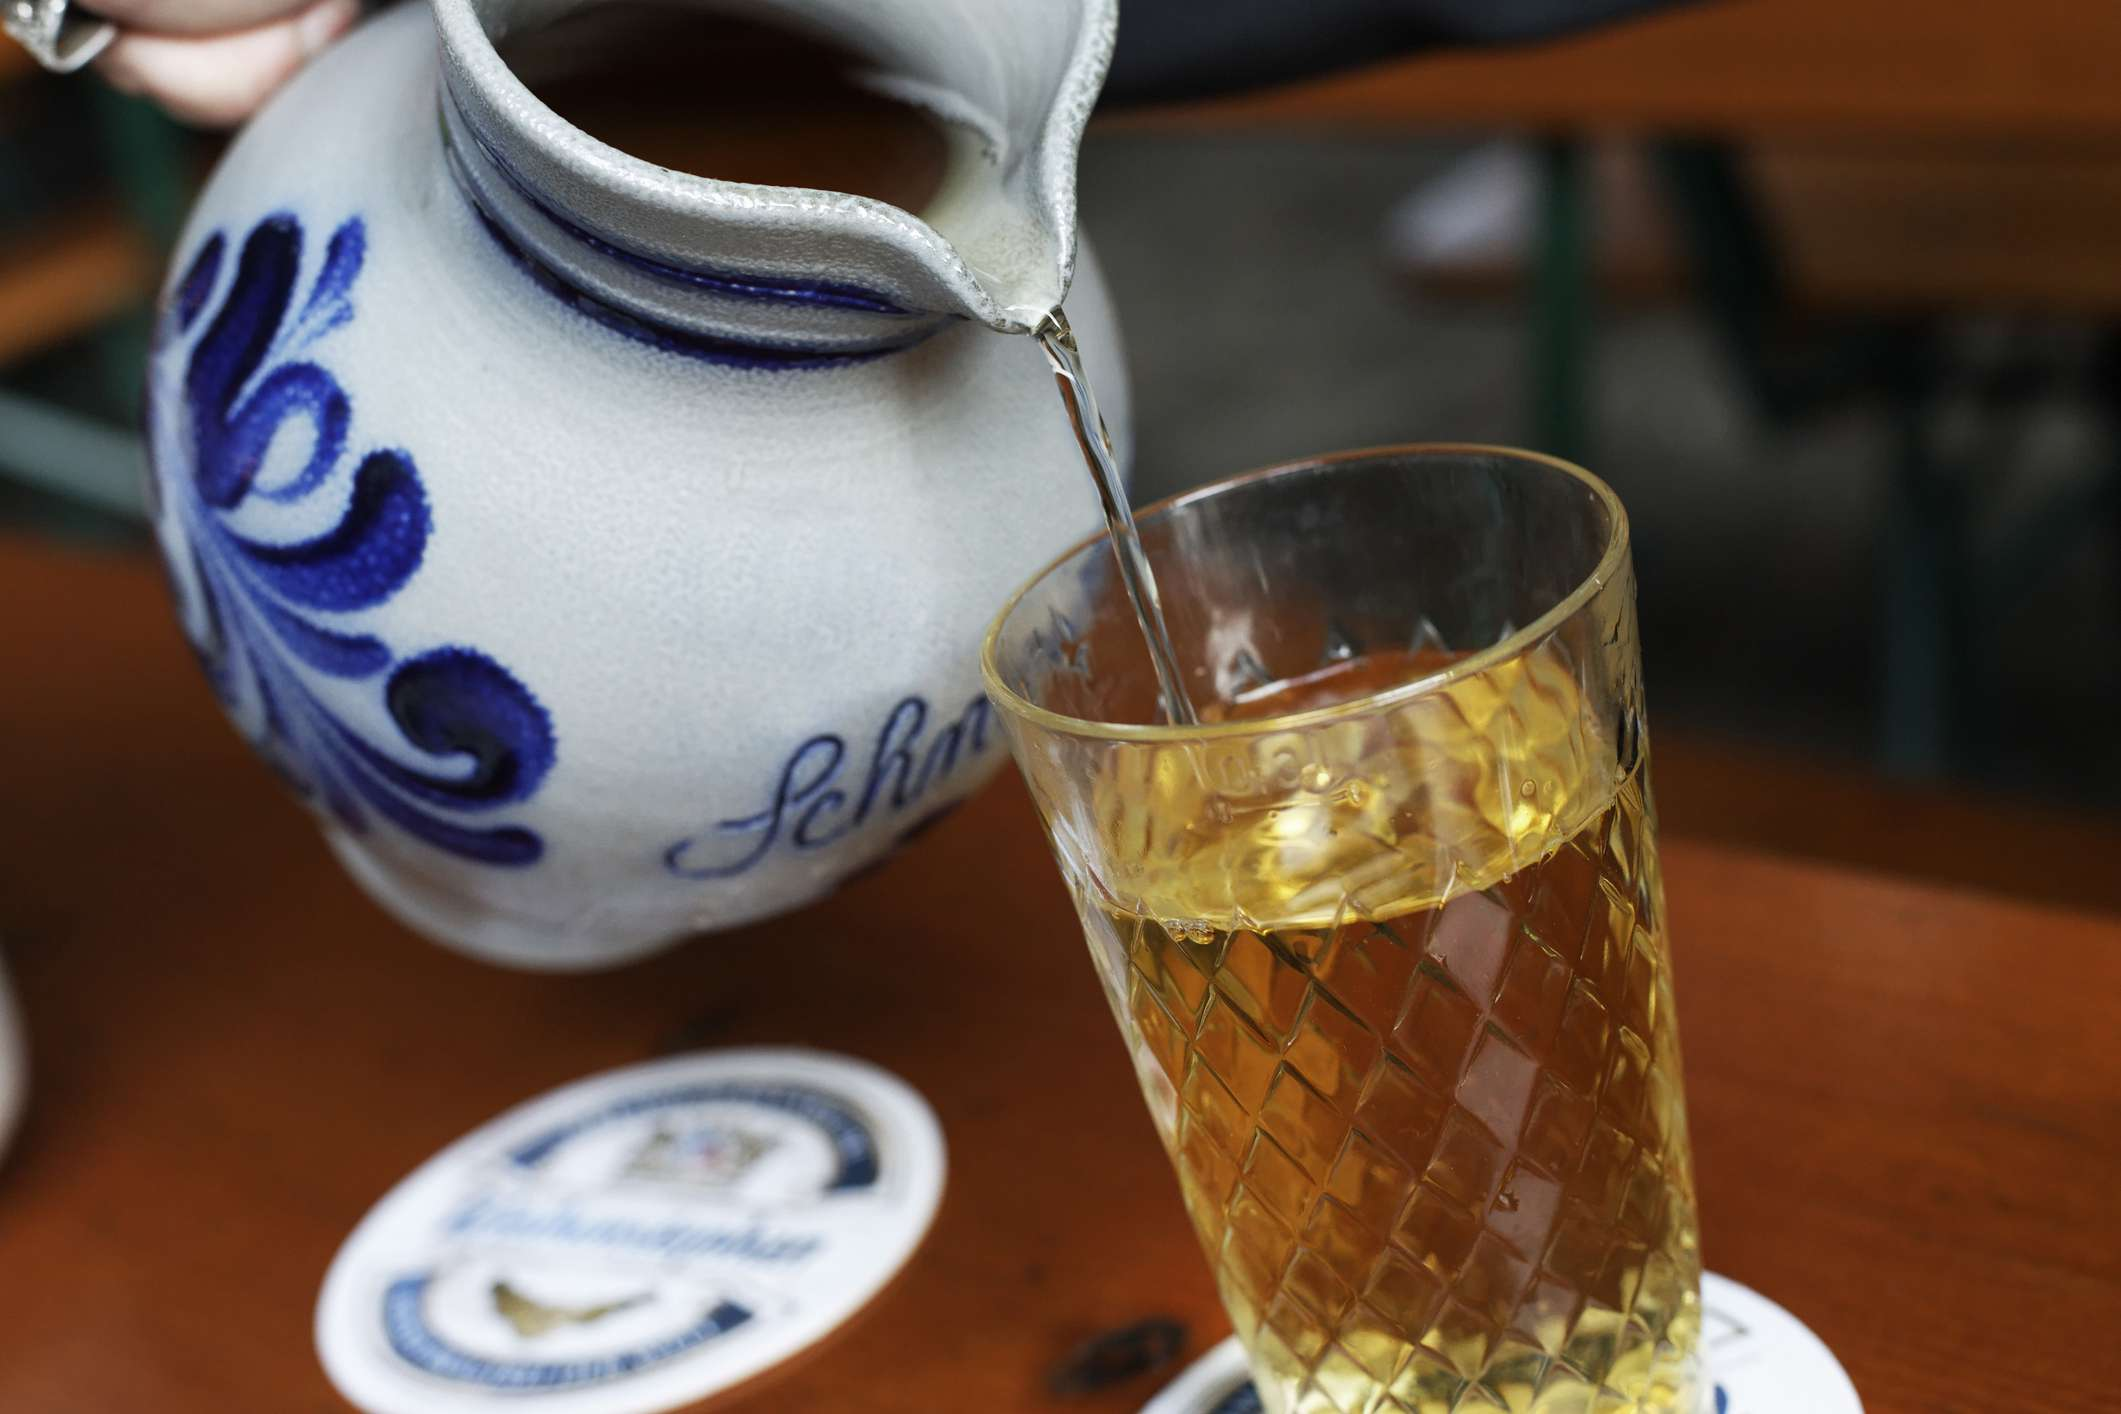 Pouring apple wine out of a jug, Apple wine pub in Alt-Sachsenhausen, Frankfurt am Main, Hesse, Germany